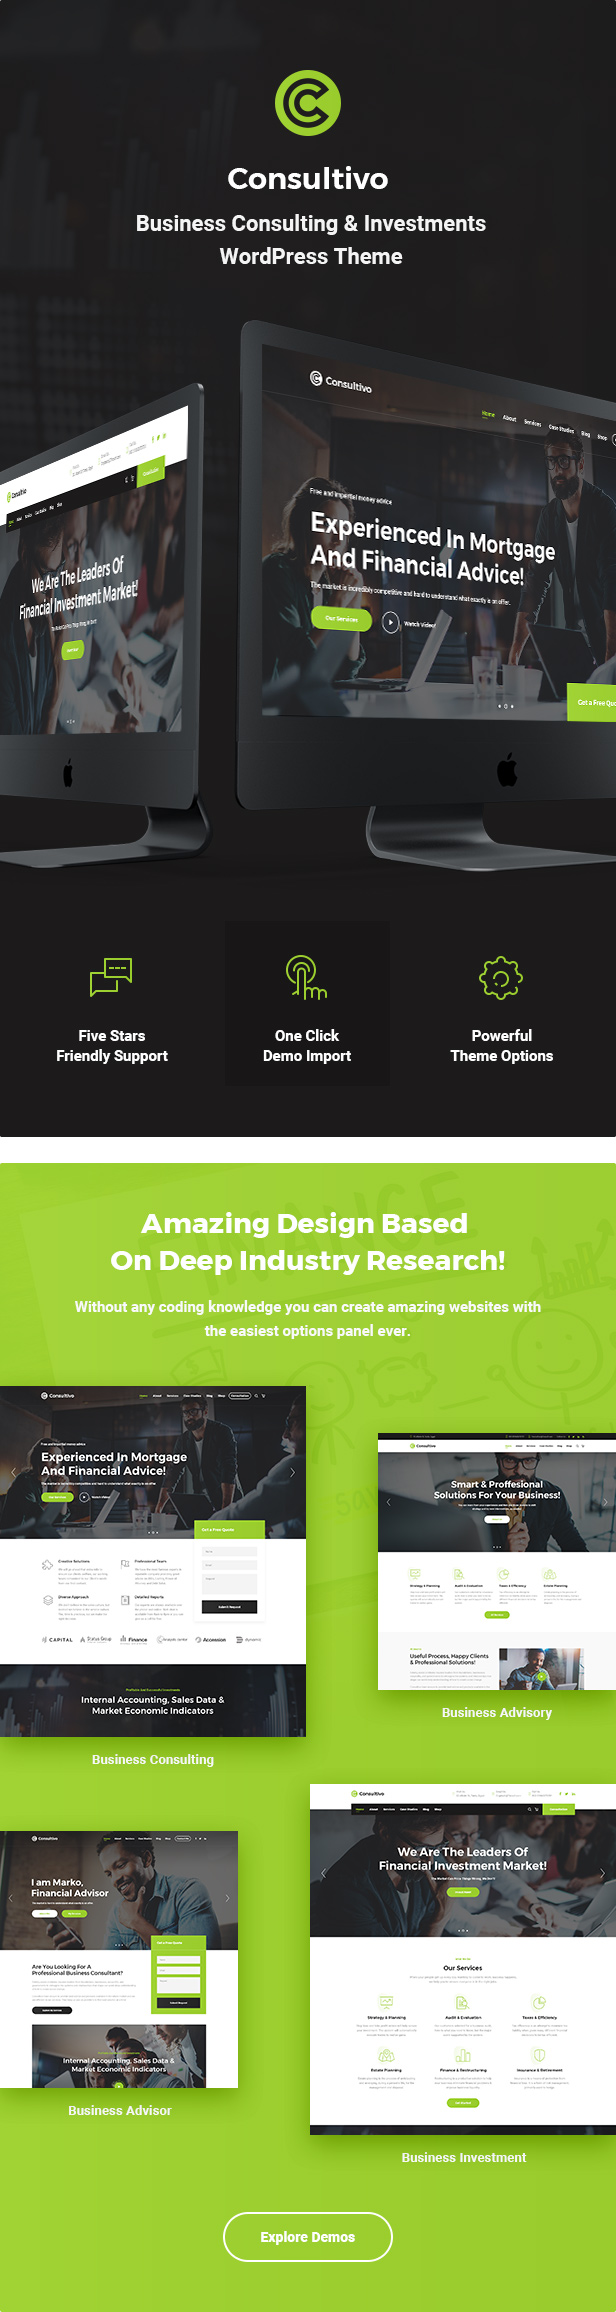 Consultivo - Business Consulting and Investments WordPress Theme - 5